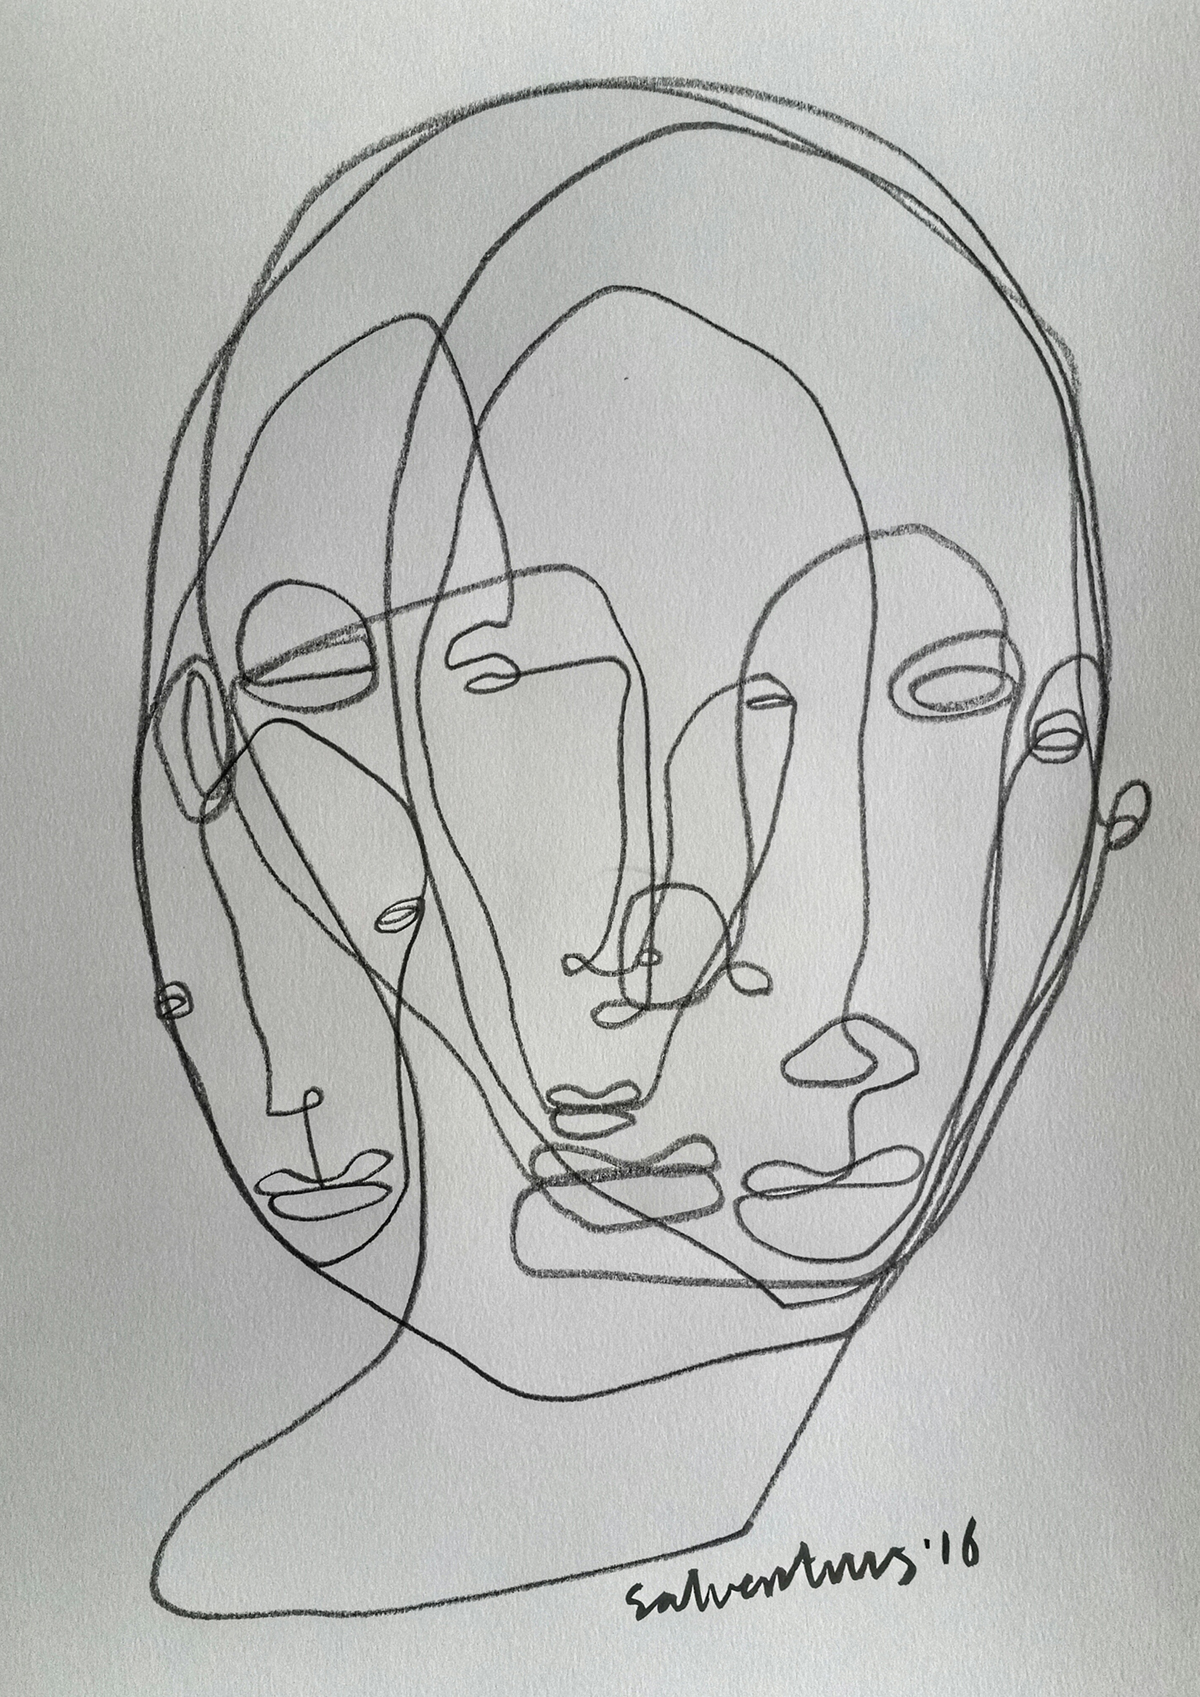 Continuous Line Art : Continuous line drawings solo art daysproject on